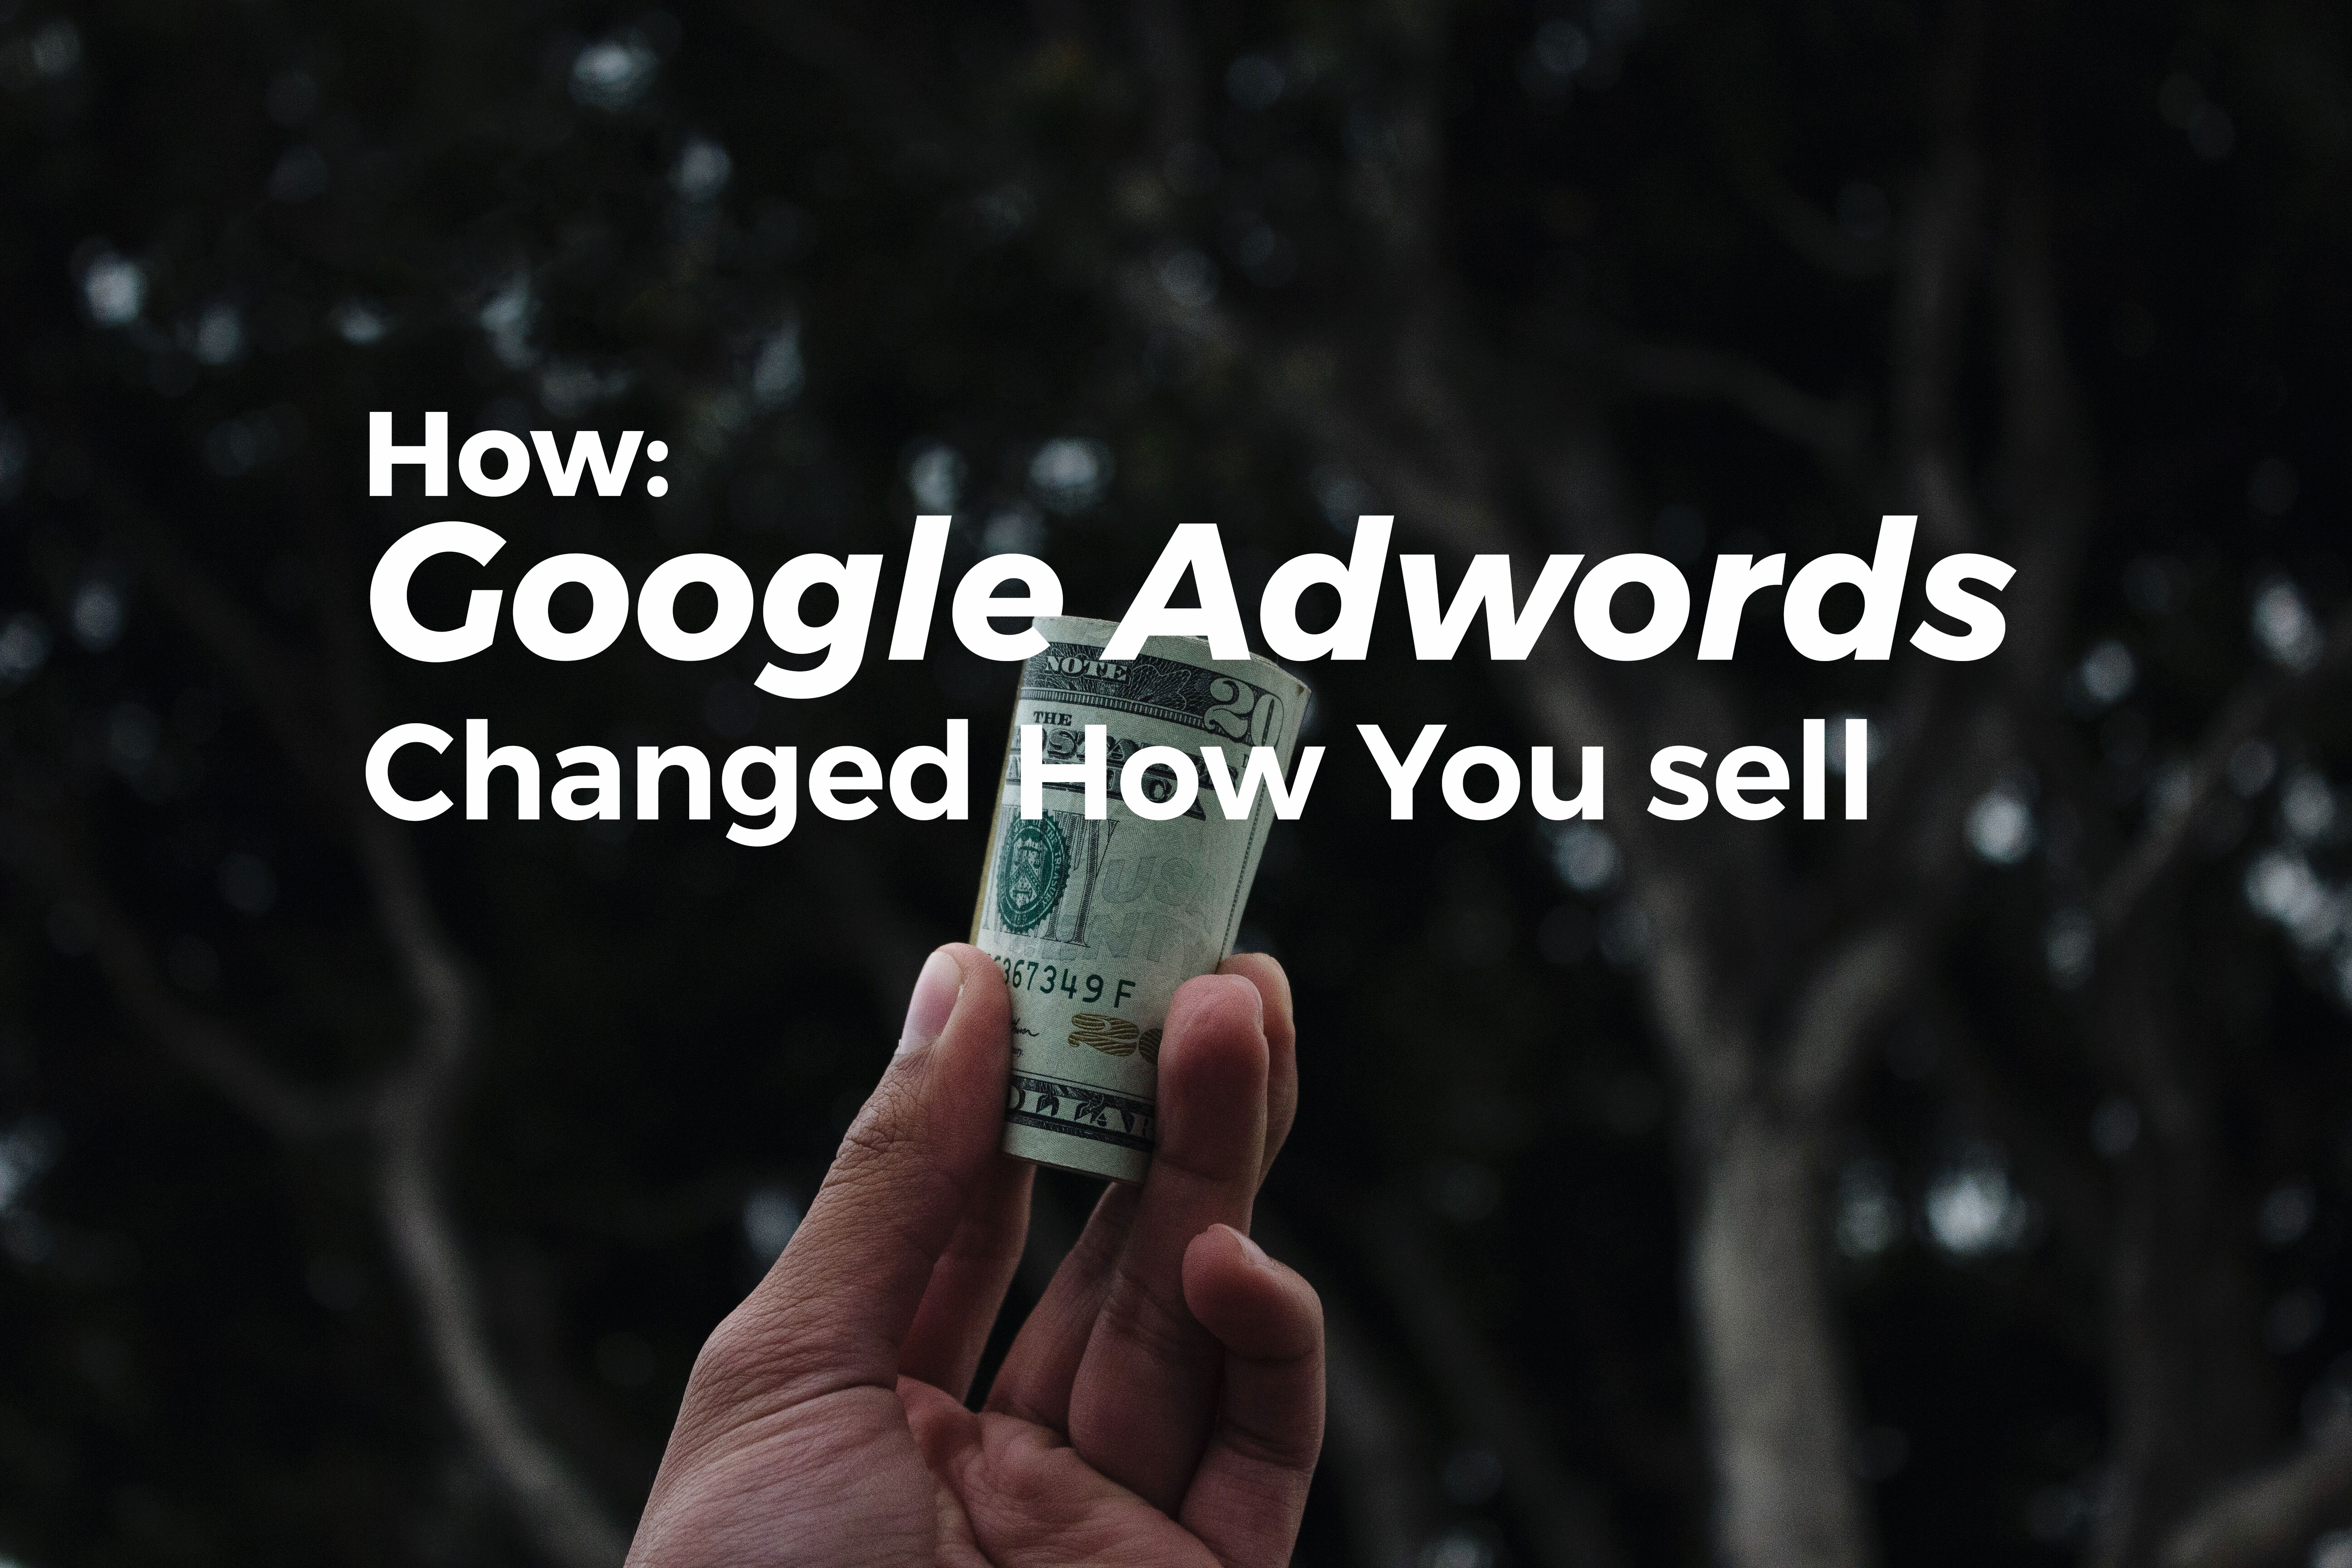 google-adwords-changed-how-you-sell